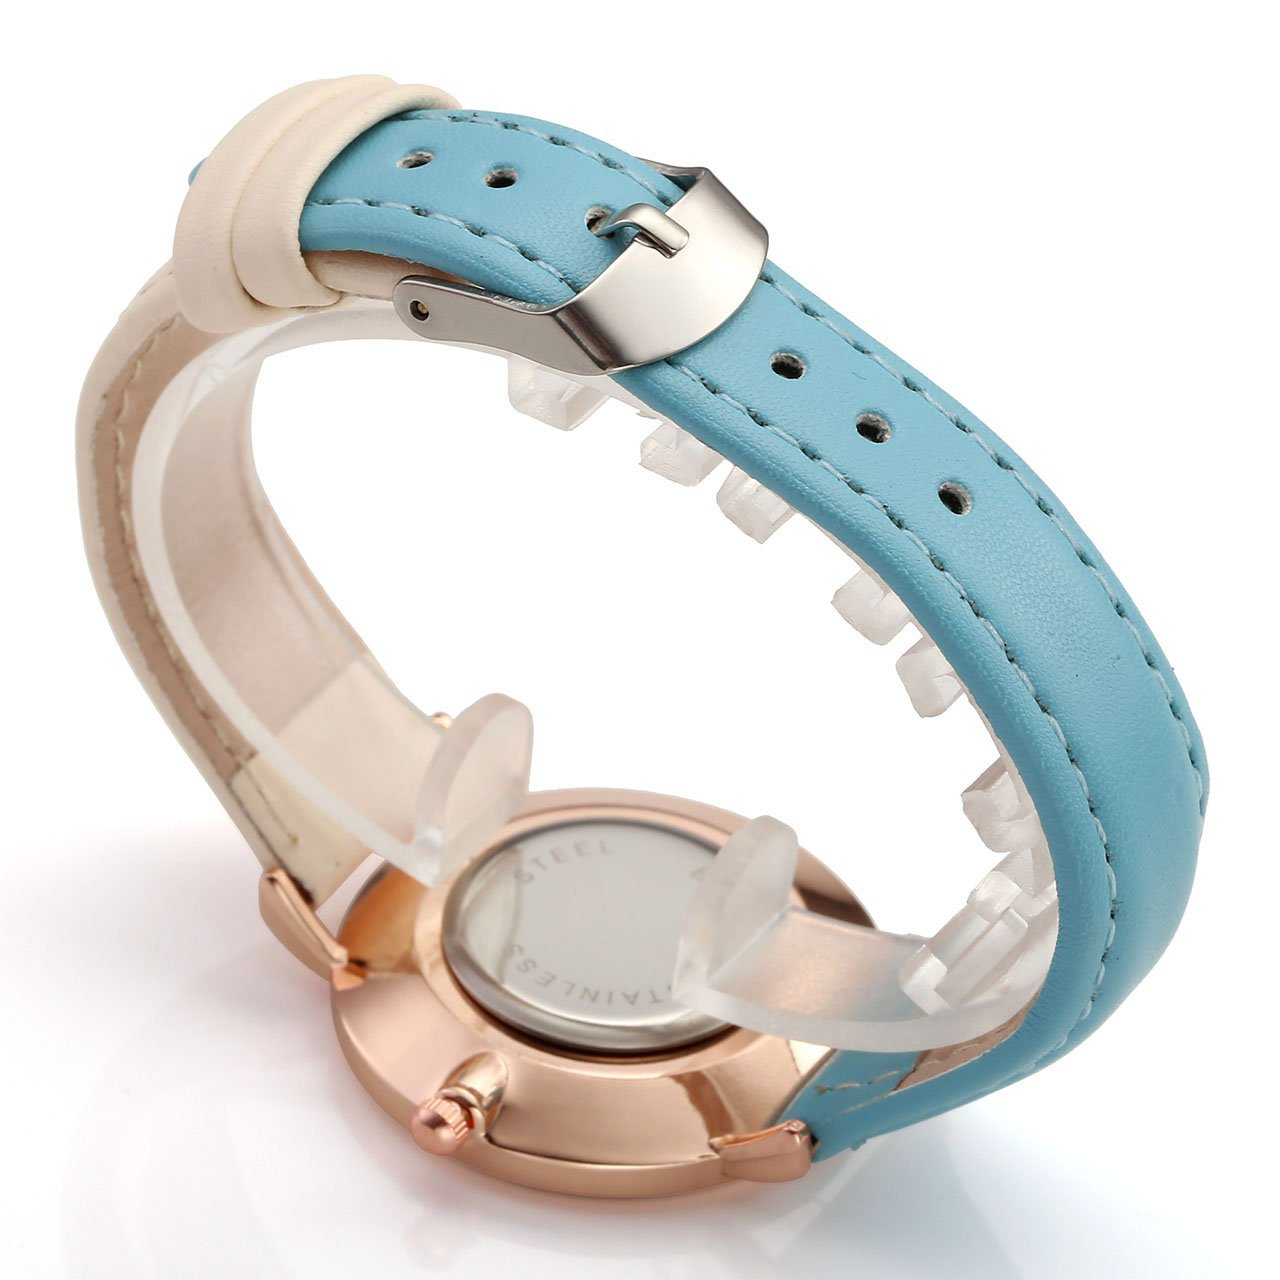 Amazon.com: Top Plaza Womens Ladies Fashion Simple Mixed Color Analog Quartz Wrist Watch Rose Gold Case Pu Leather Strap Dress Watches - Sky Blue and White: ...